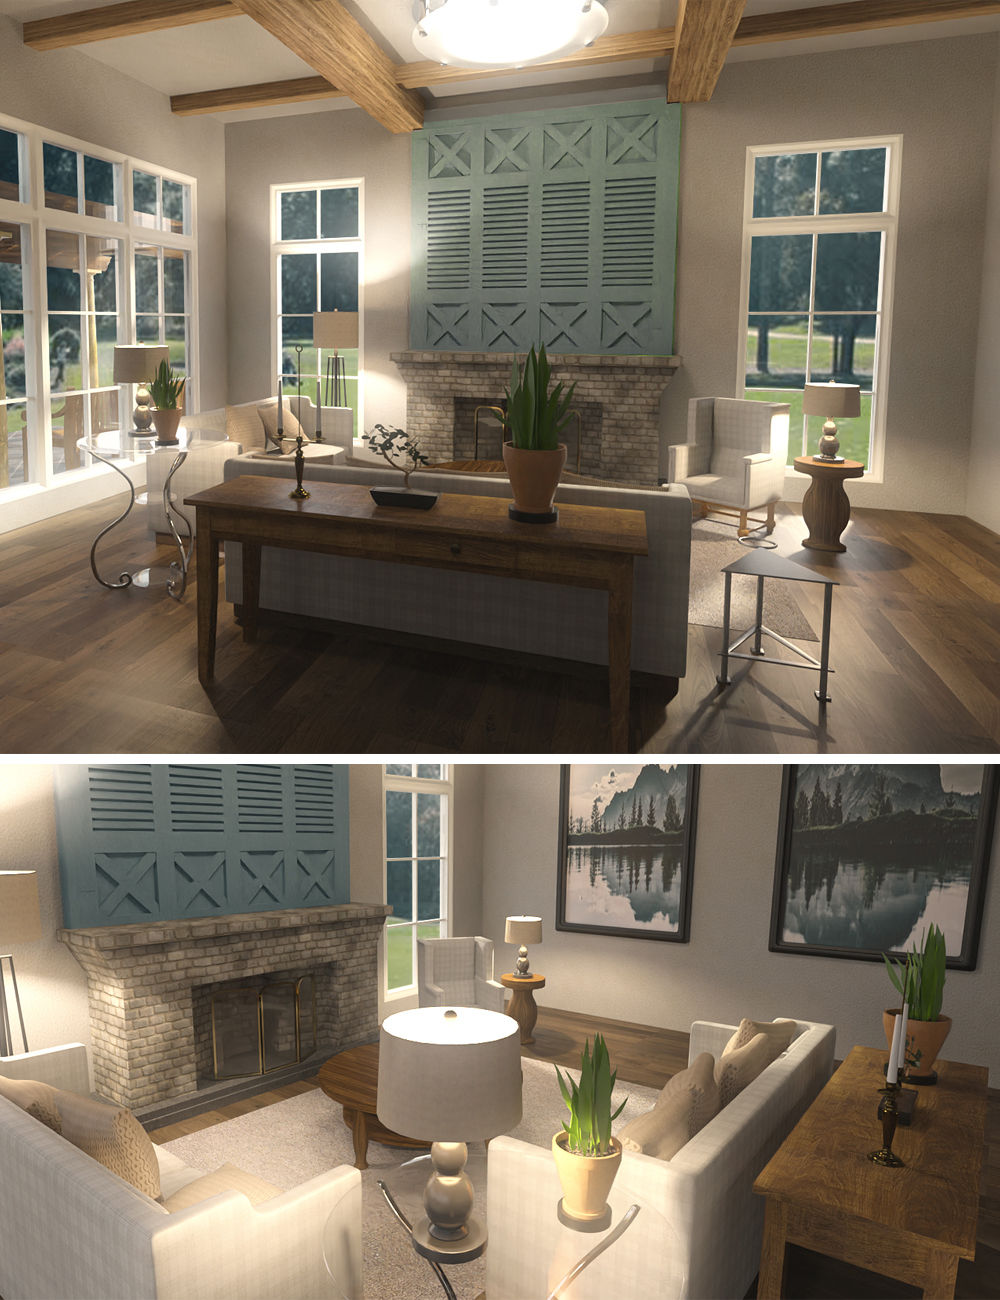 Louisiana Living Room by: kubramatic, 3D Models by Daz 3D